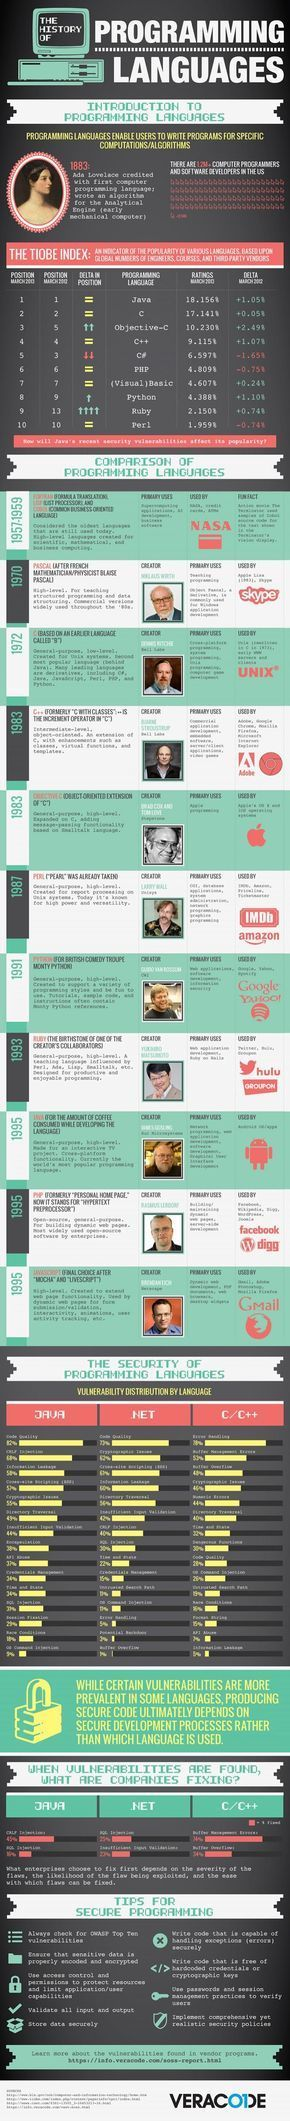 Educational infographic : A brief history of computer programming languages #infographic